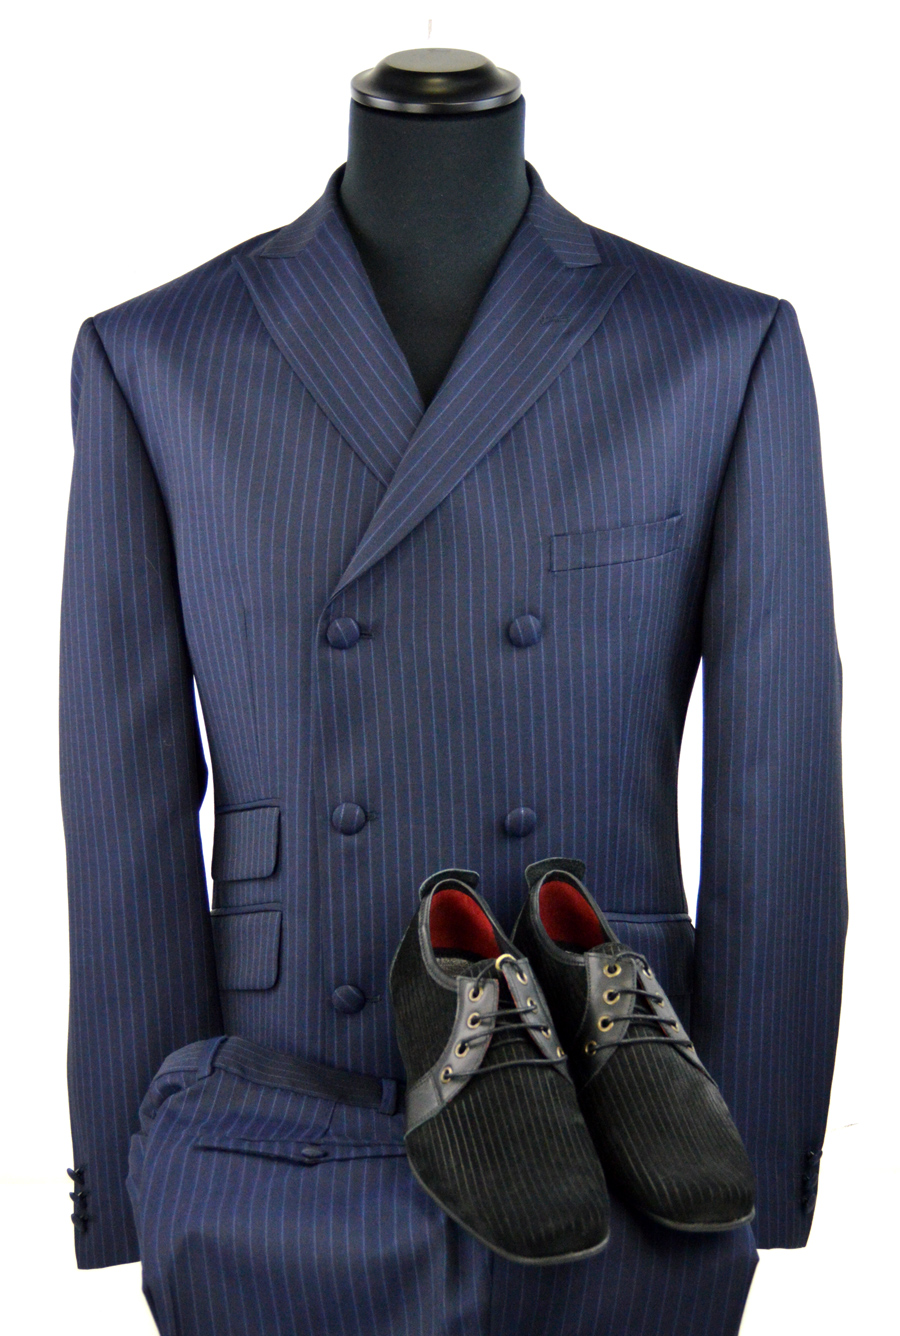 modshoes-suede-corded-shoes-rawlings-with-blue-striped-mod-suit-from-adaptor-clothing-06